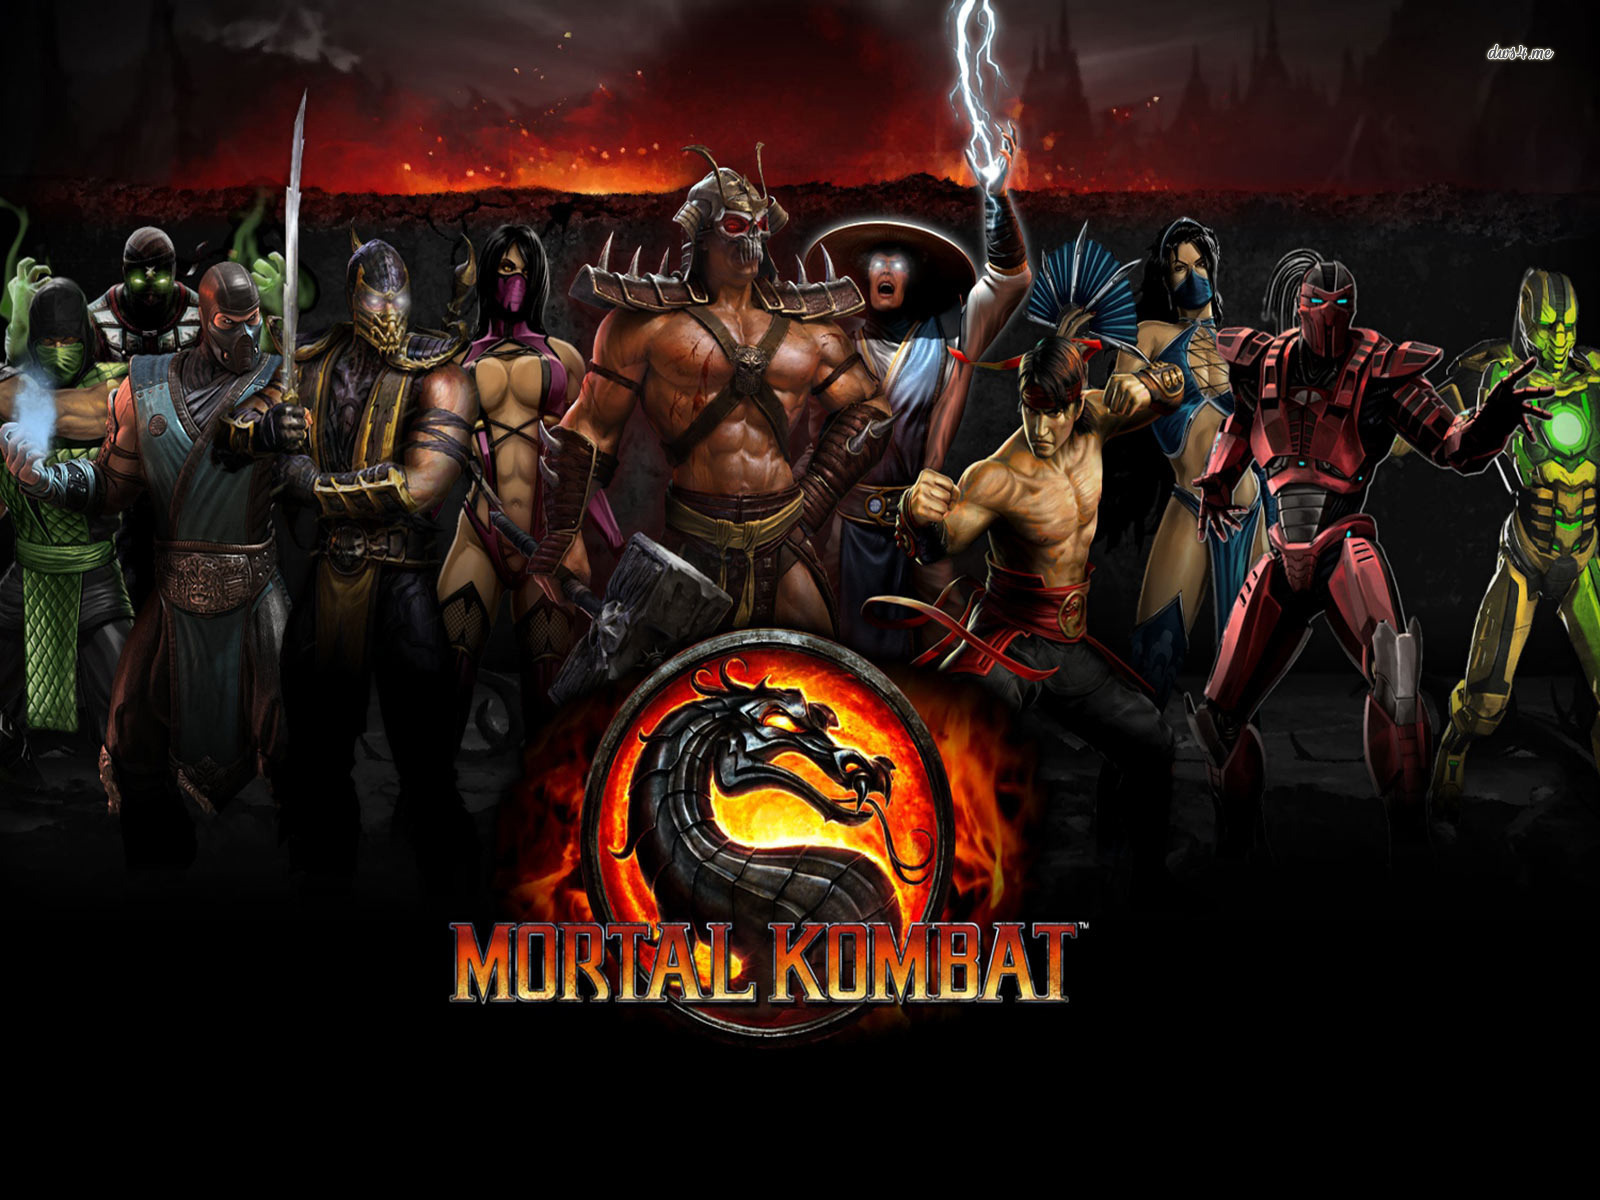 image - 2239-mortal-kombat-1600x1200-game-wallpaper | mortal